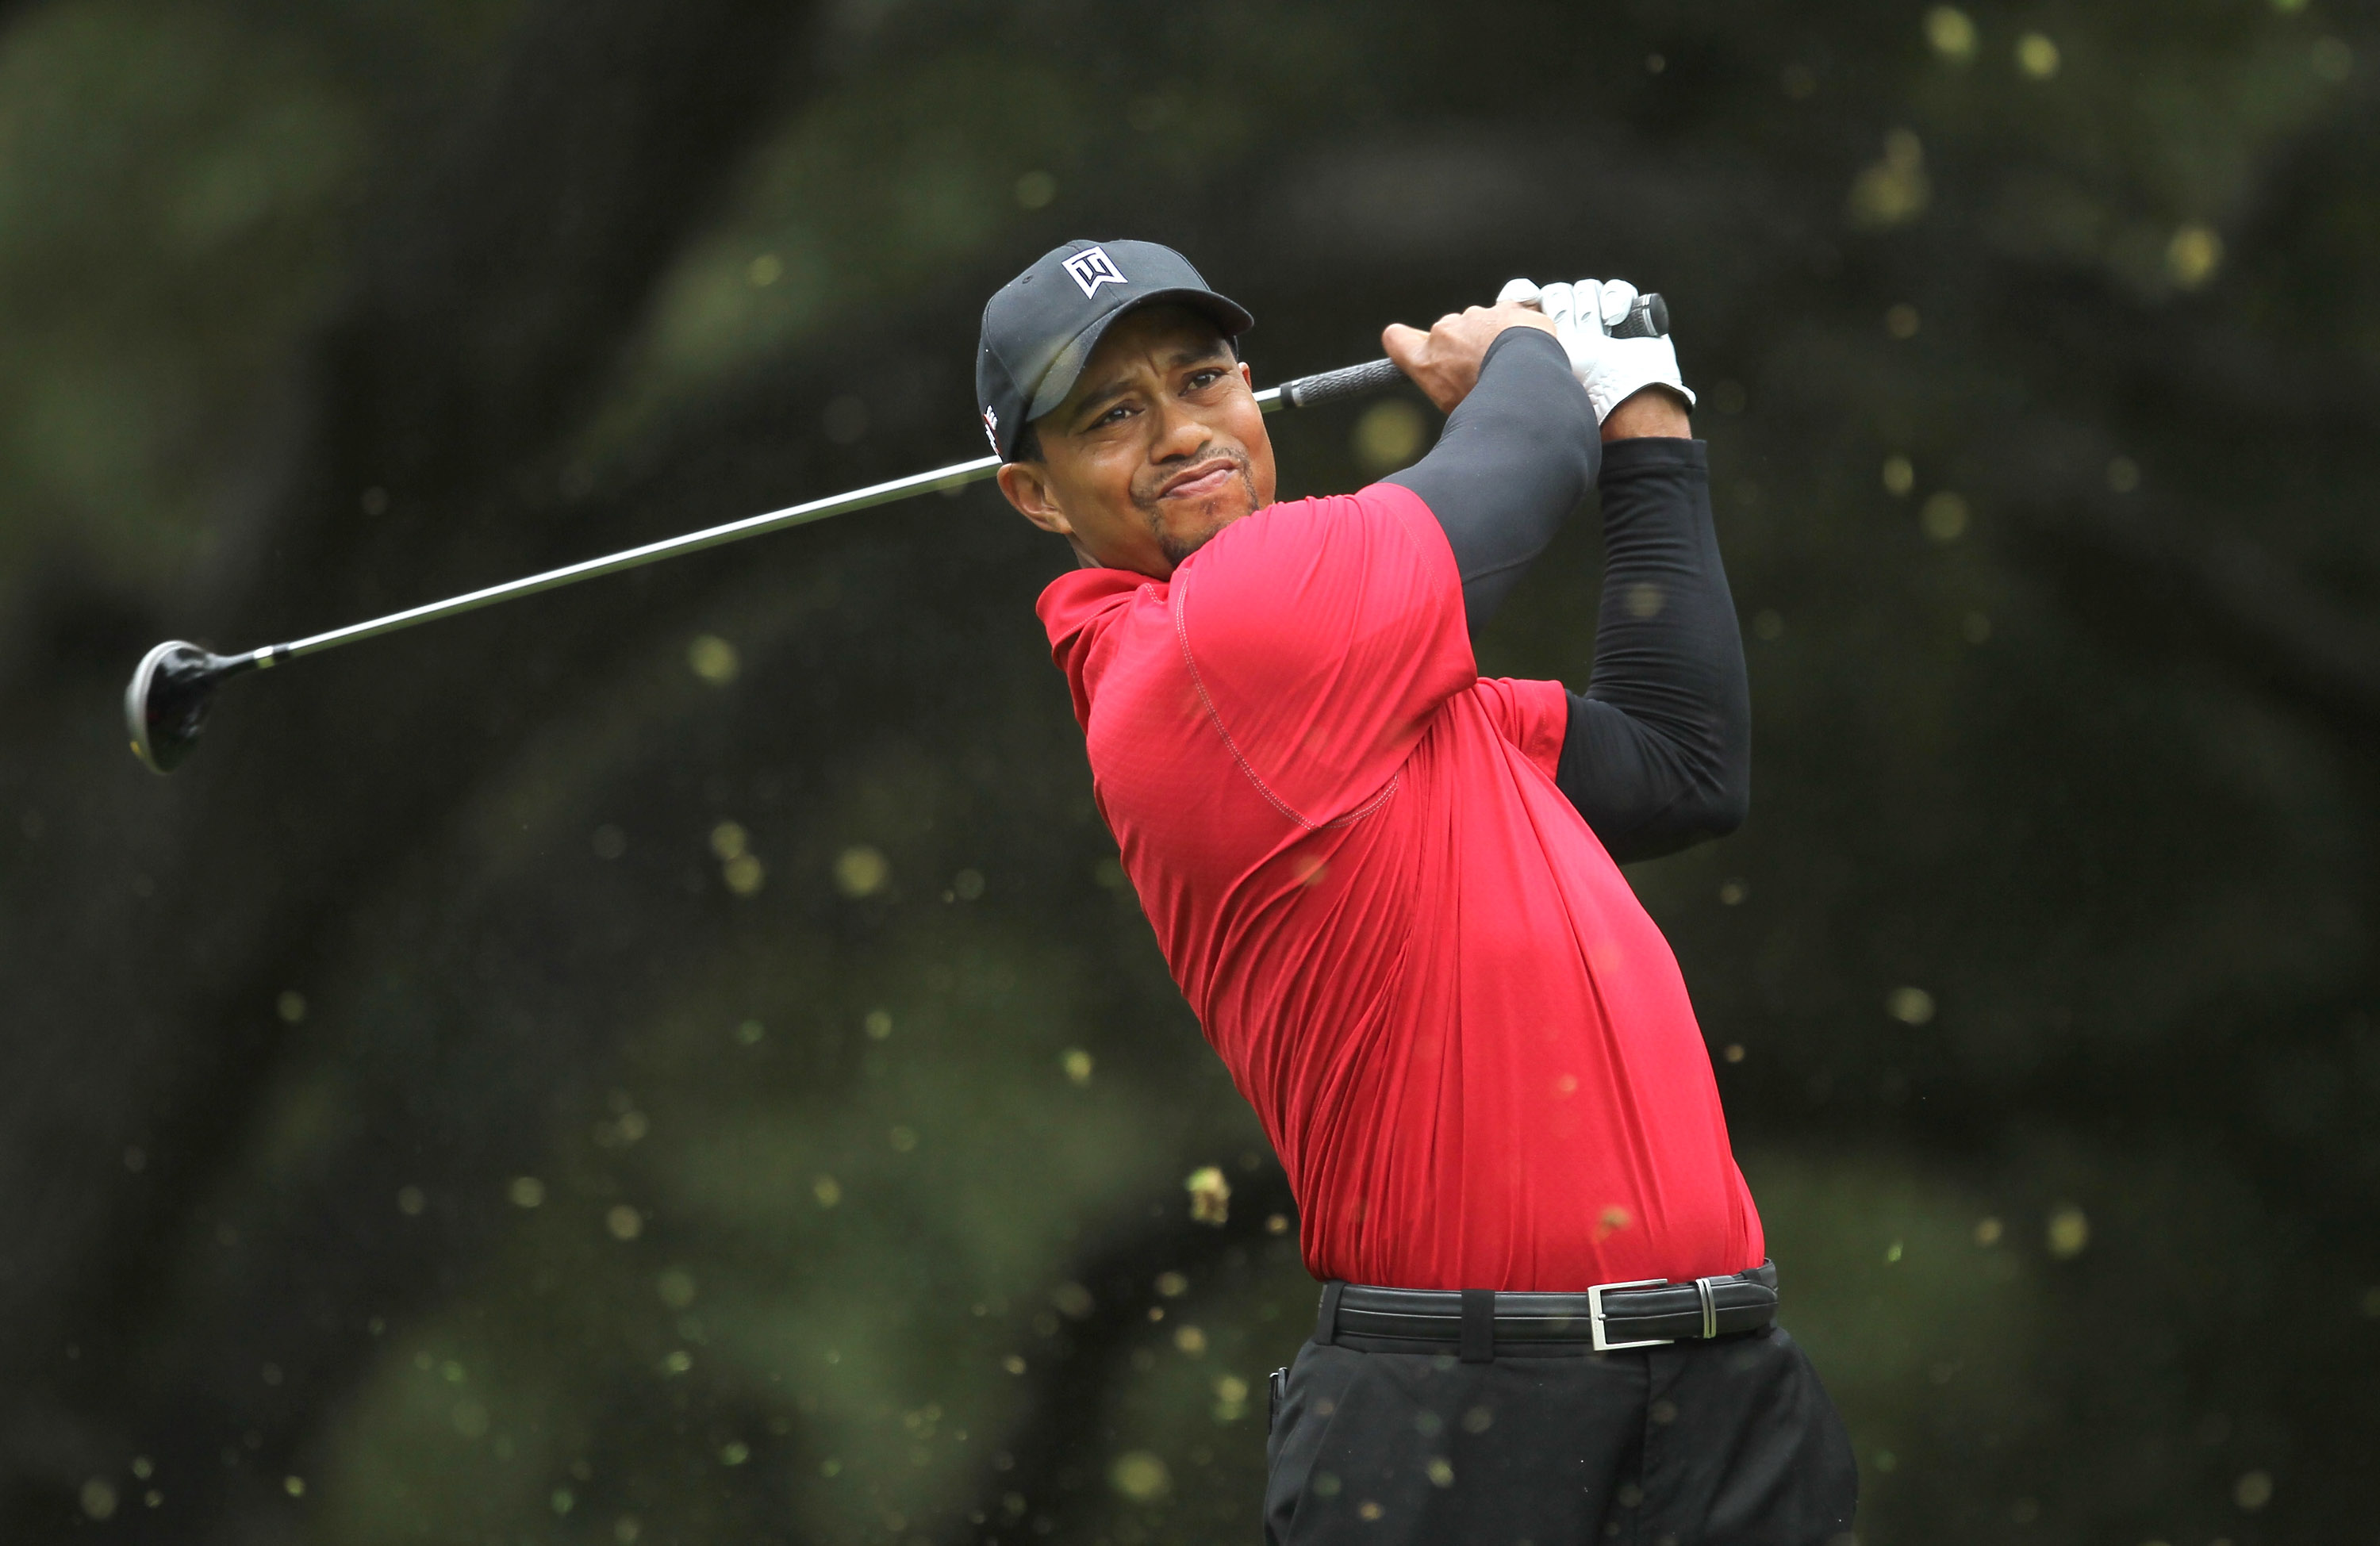 THOUSAND OAKS, CA - DECEMBER 5: Tiger Woods hits his tee shot on the sixth hole during the final round of the Chevron World Challenge at Sherwood Country Club on December 5, 2010 in Thousand Oaks, California.  (Stephen Dunn/Getty Images)